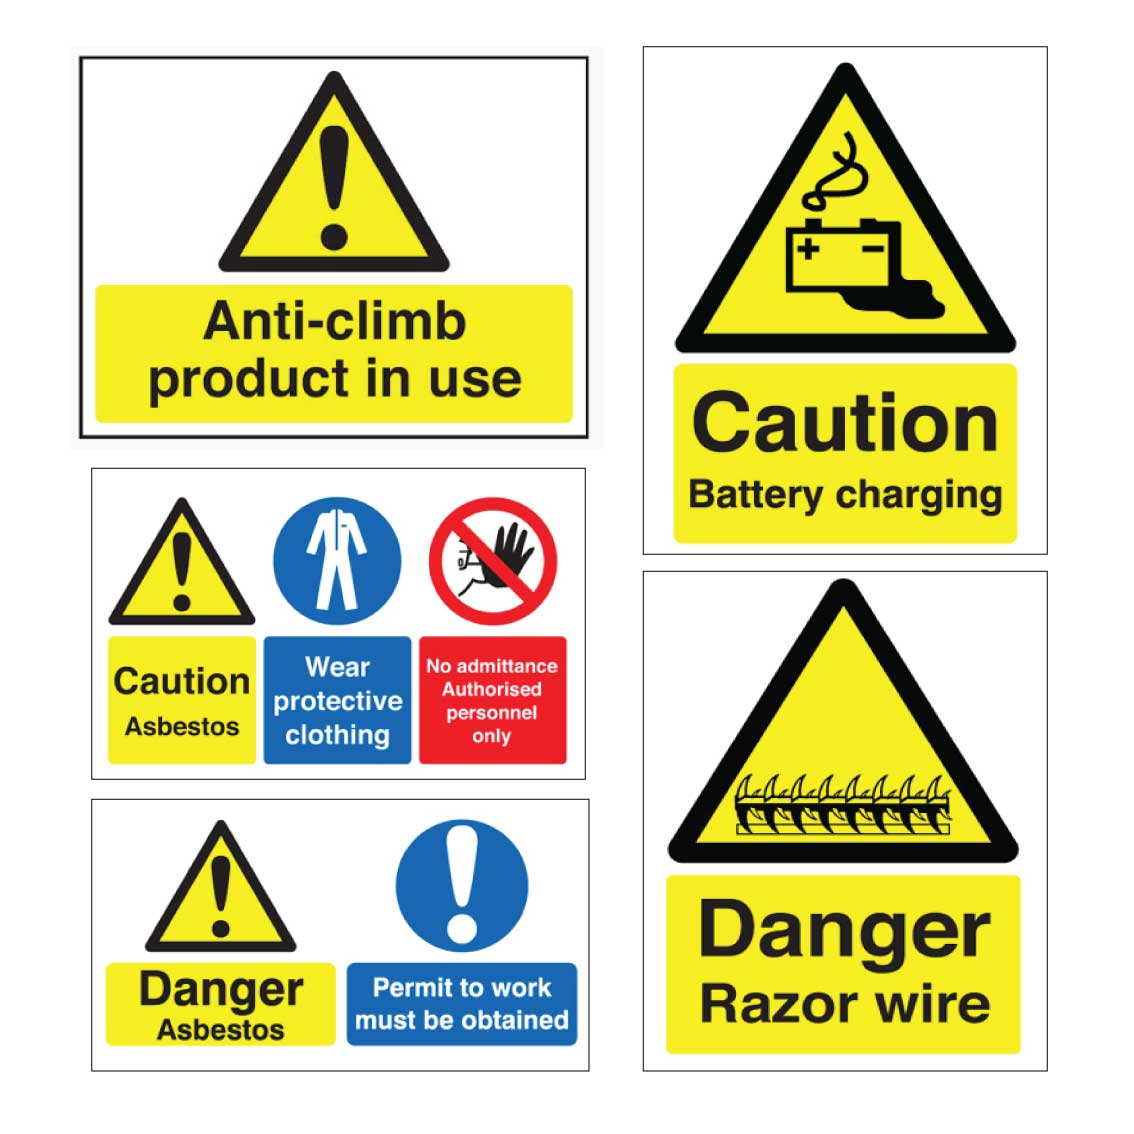 Hazard-Caution-Danger-Warning-Signs